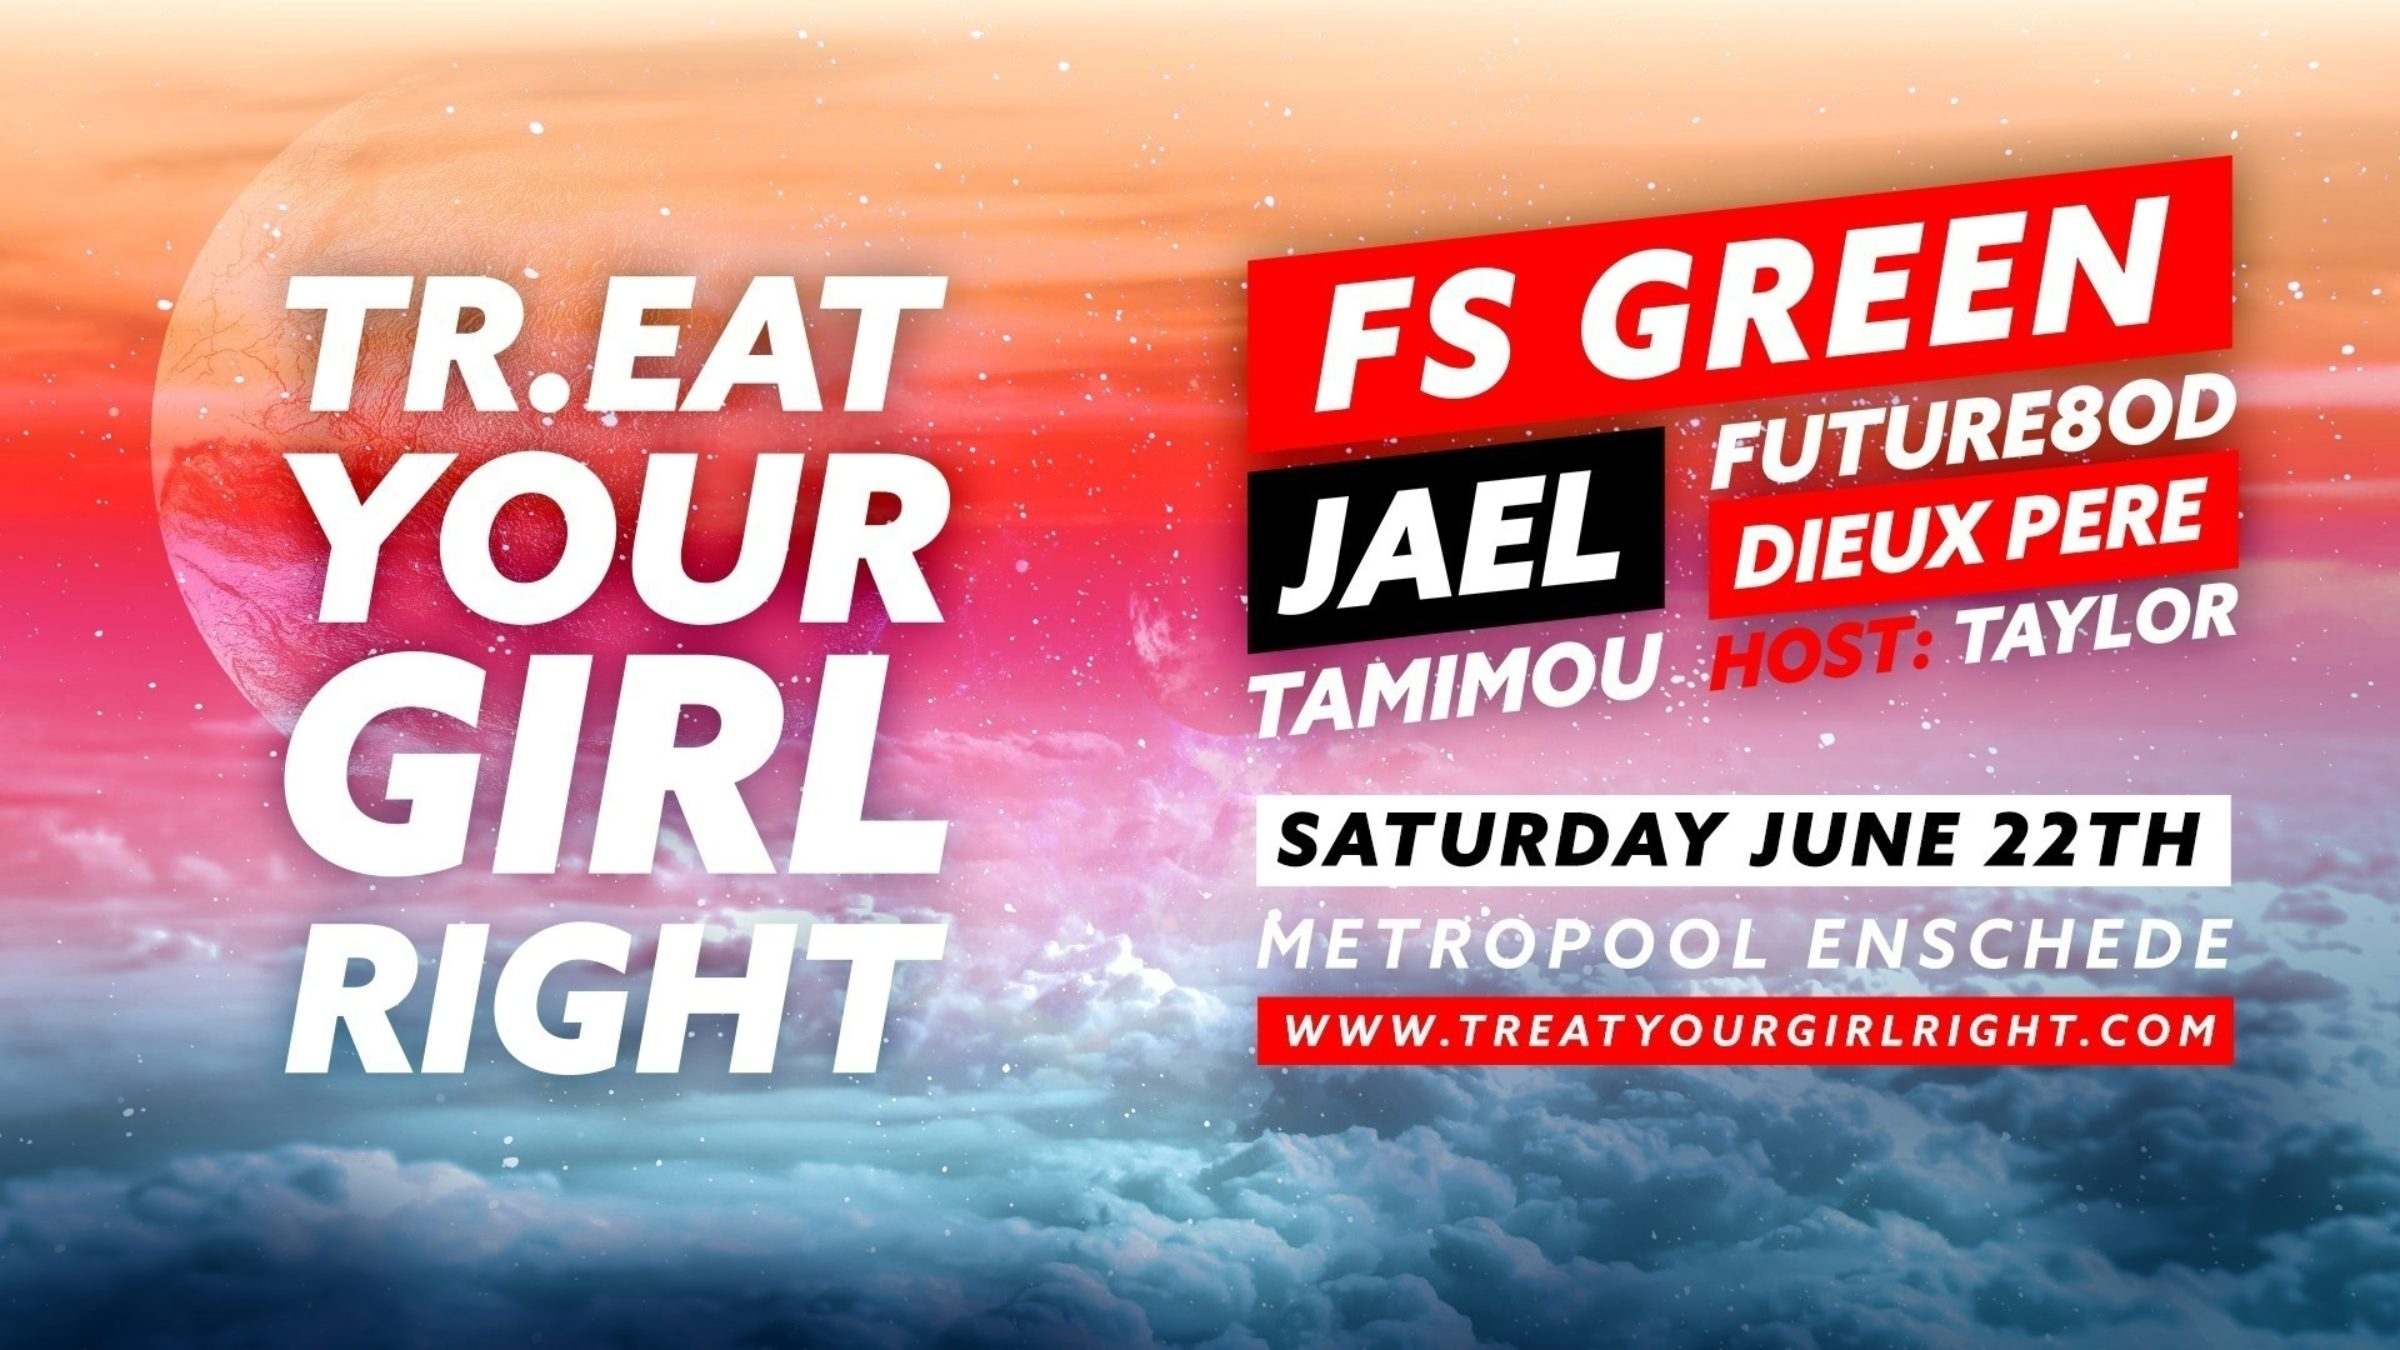 Treat your girl right enschede nr4 3155 1559719792 35hxj771wa